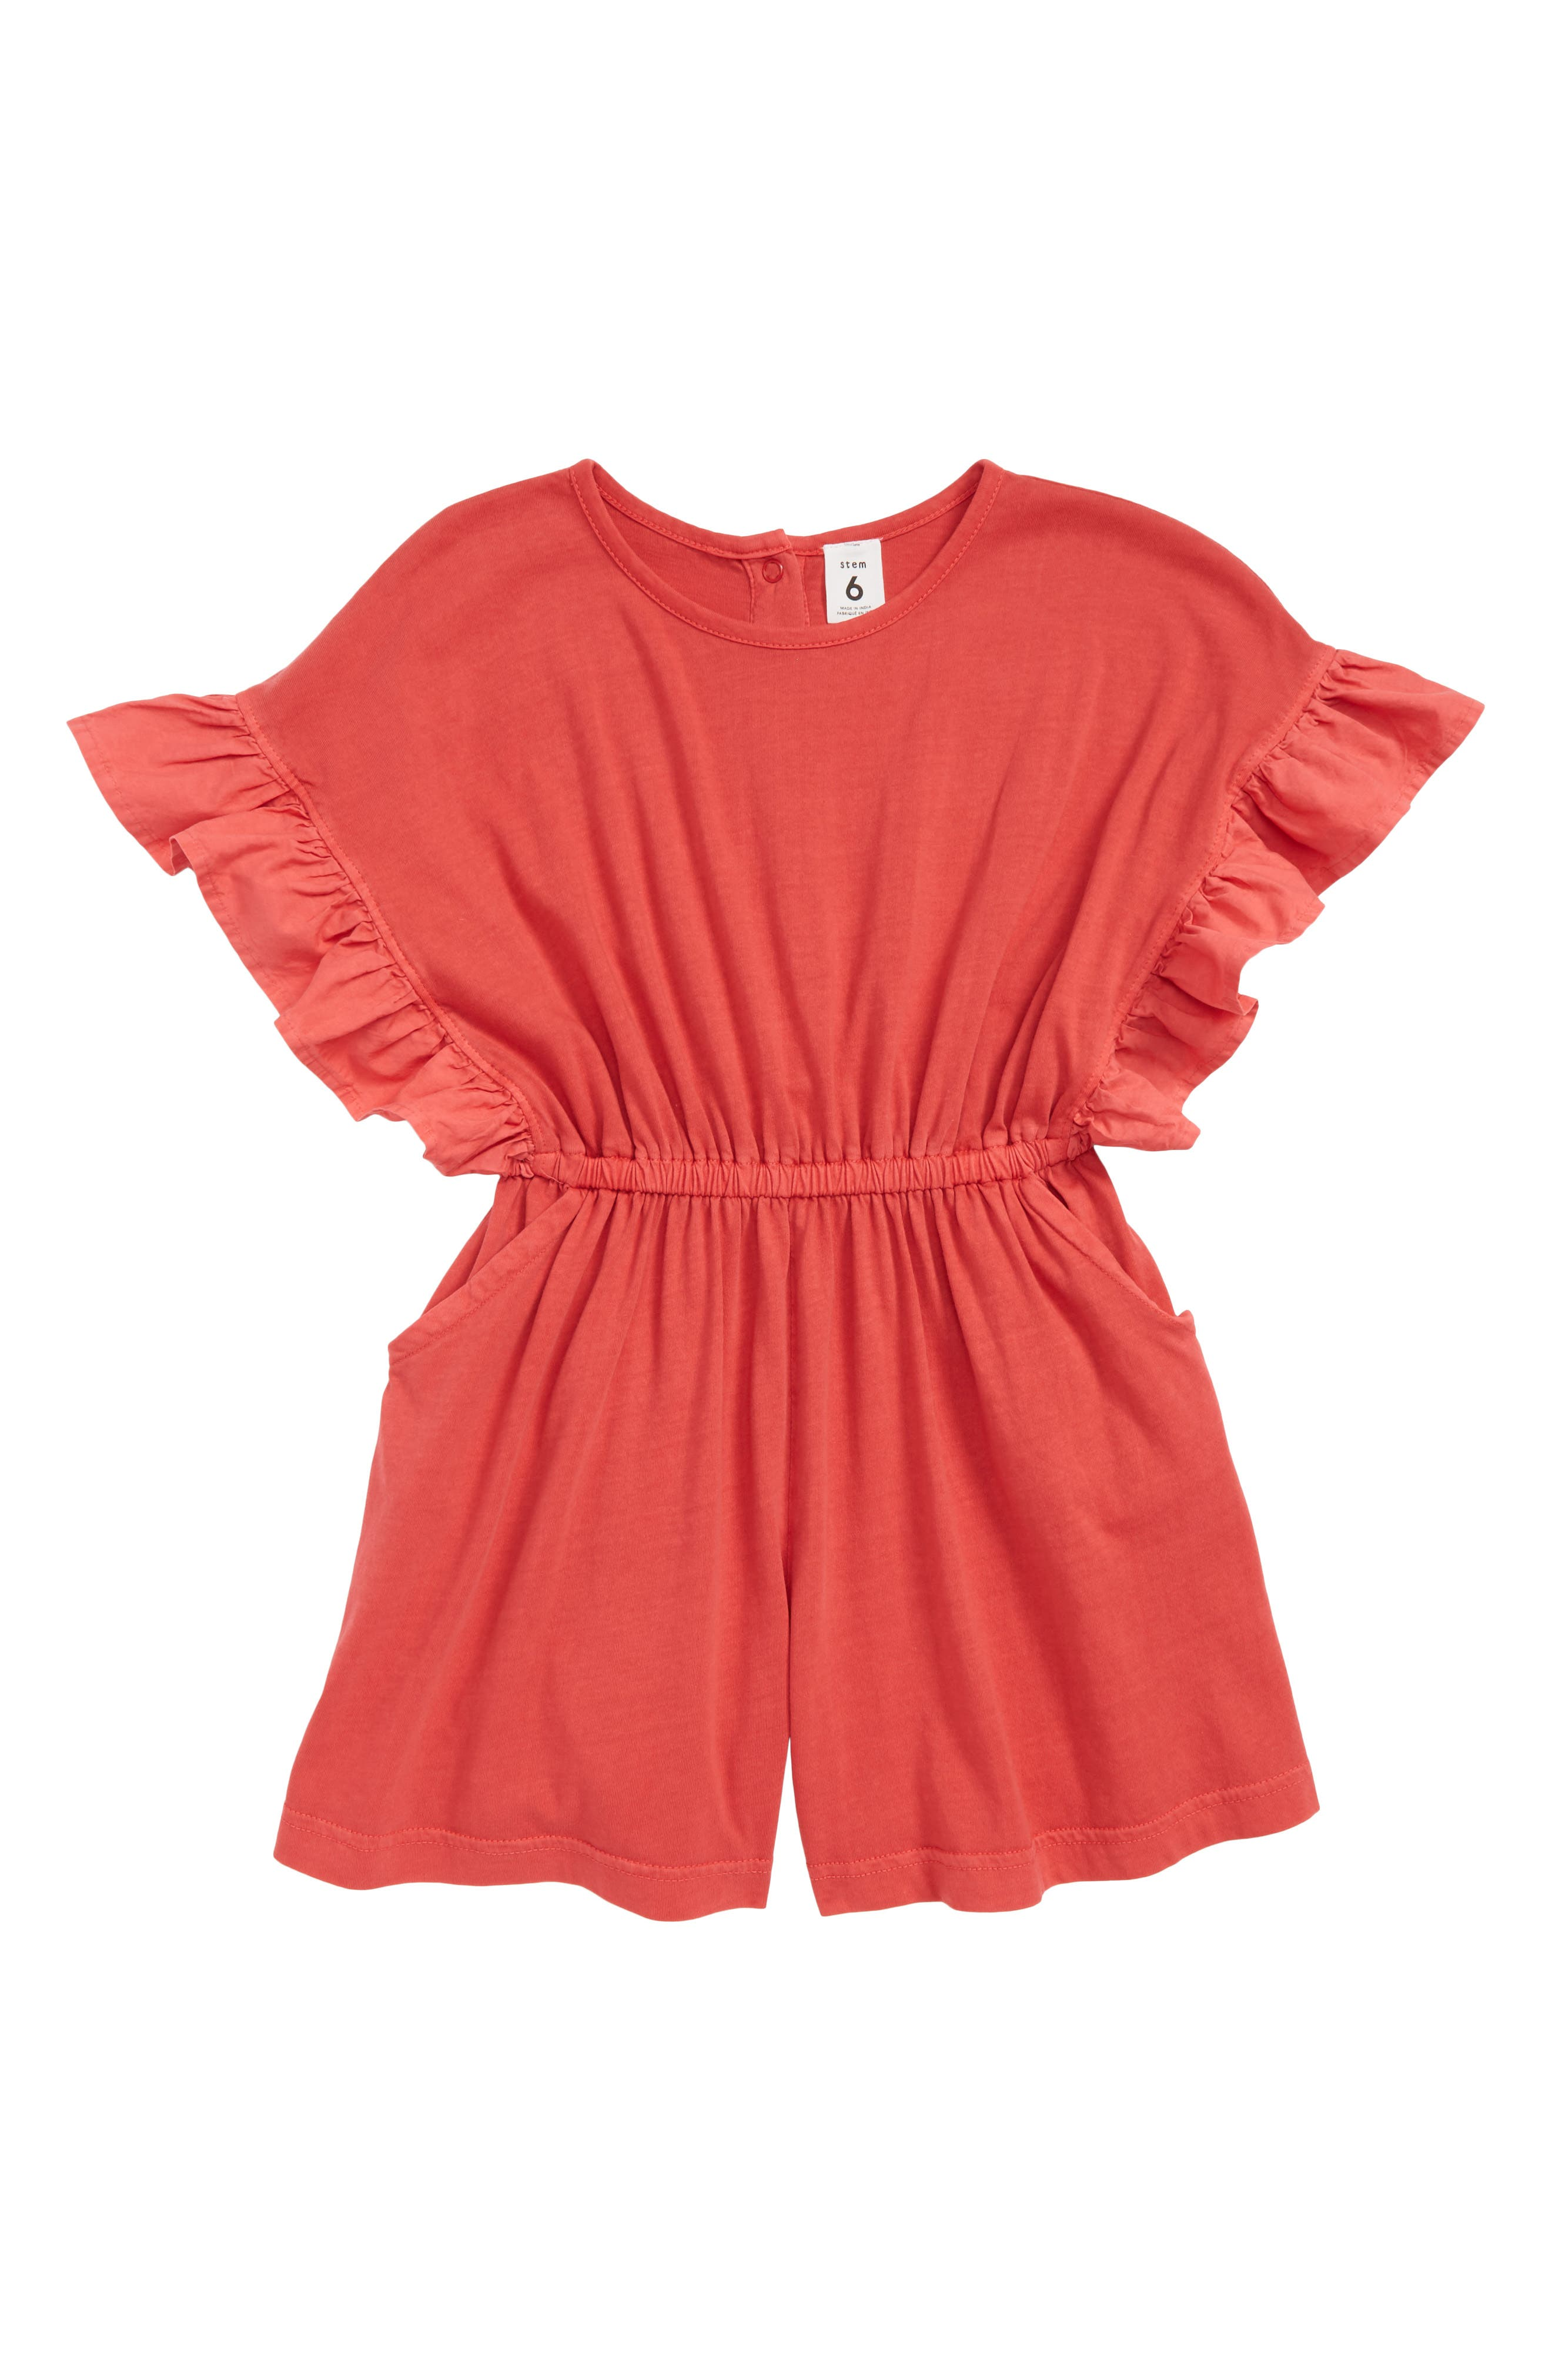 Ruffle Sleeve Romper,                         Main,                         color, Red Hibiscus